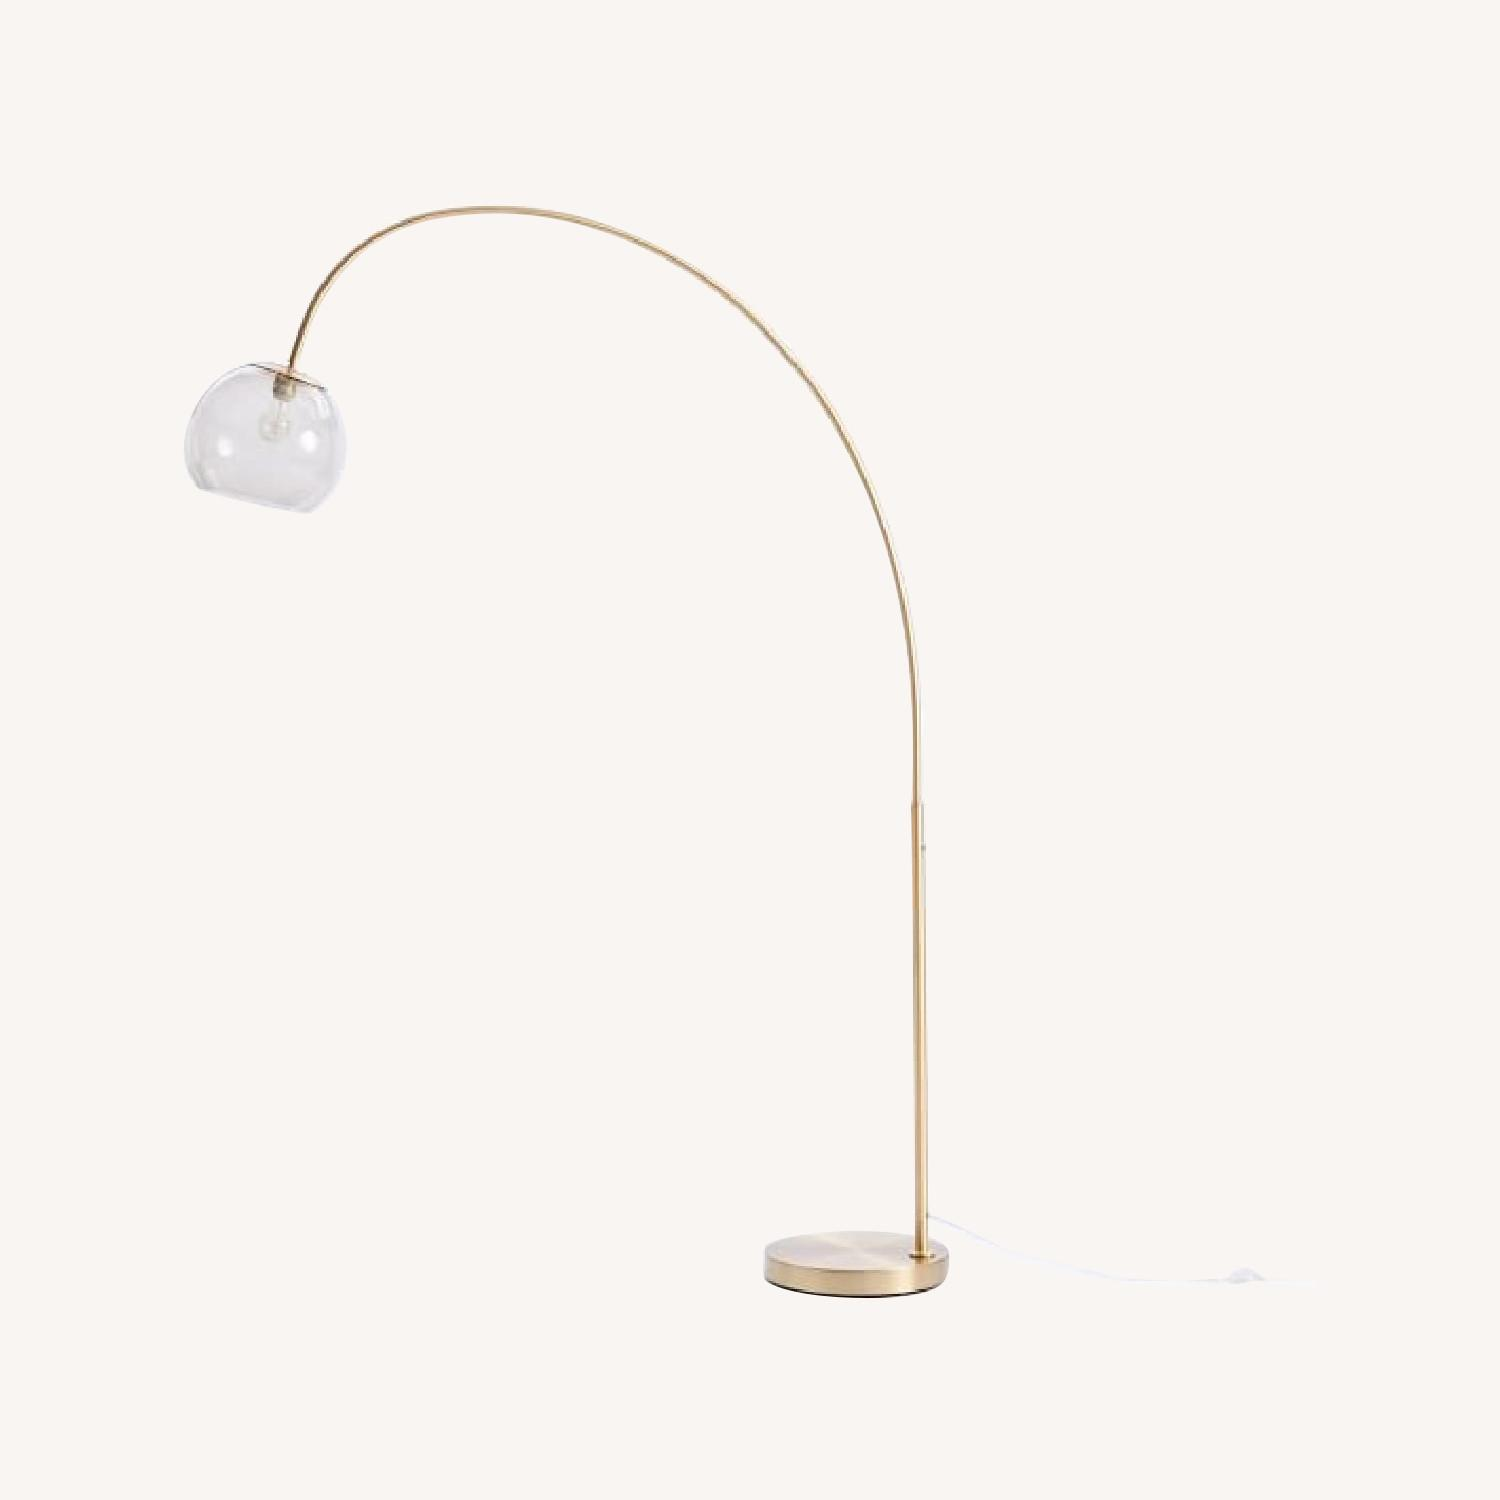 Overarching Acrylic Shade Floor Lamp - image-2